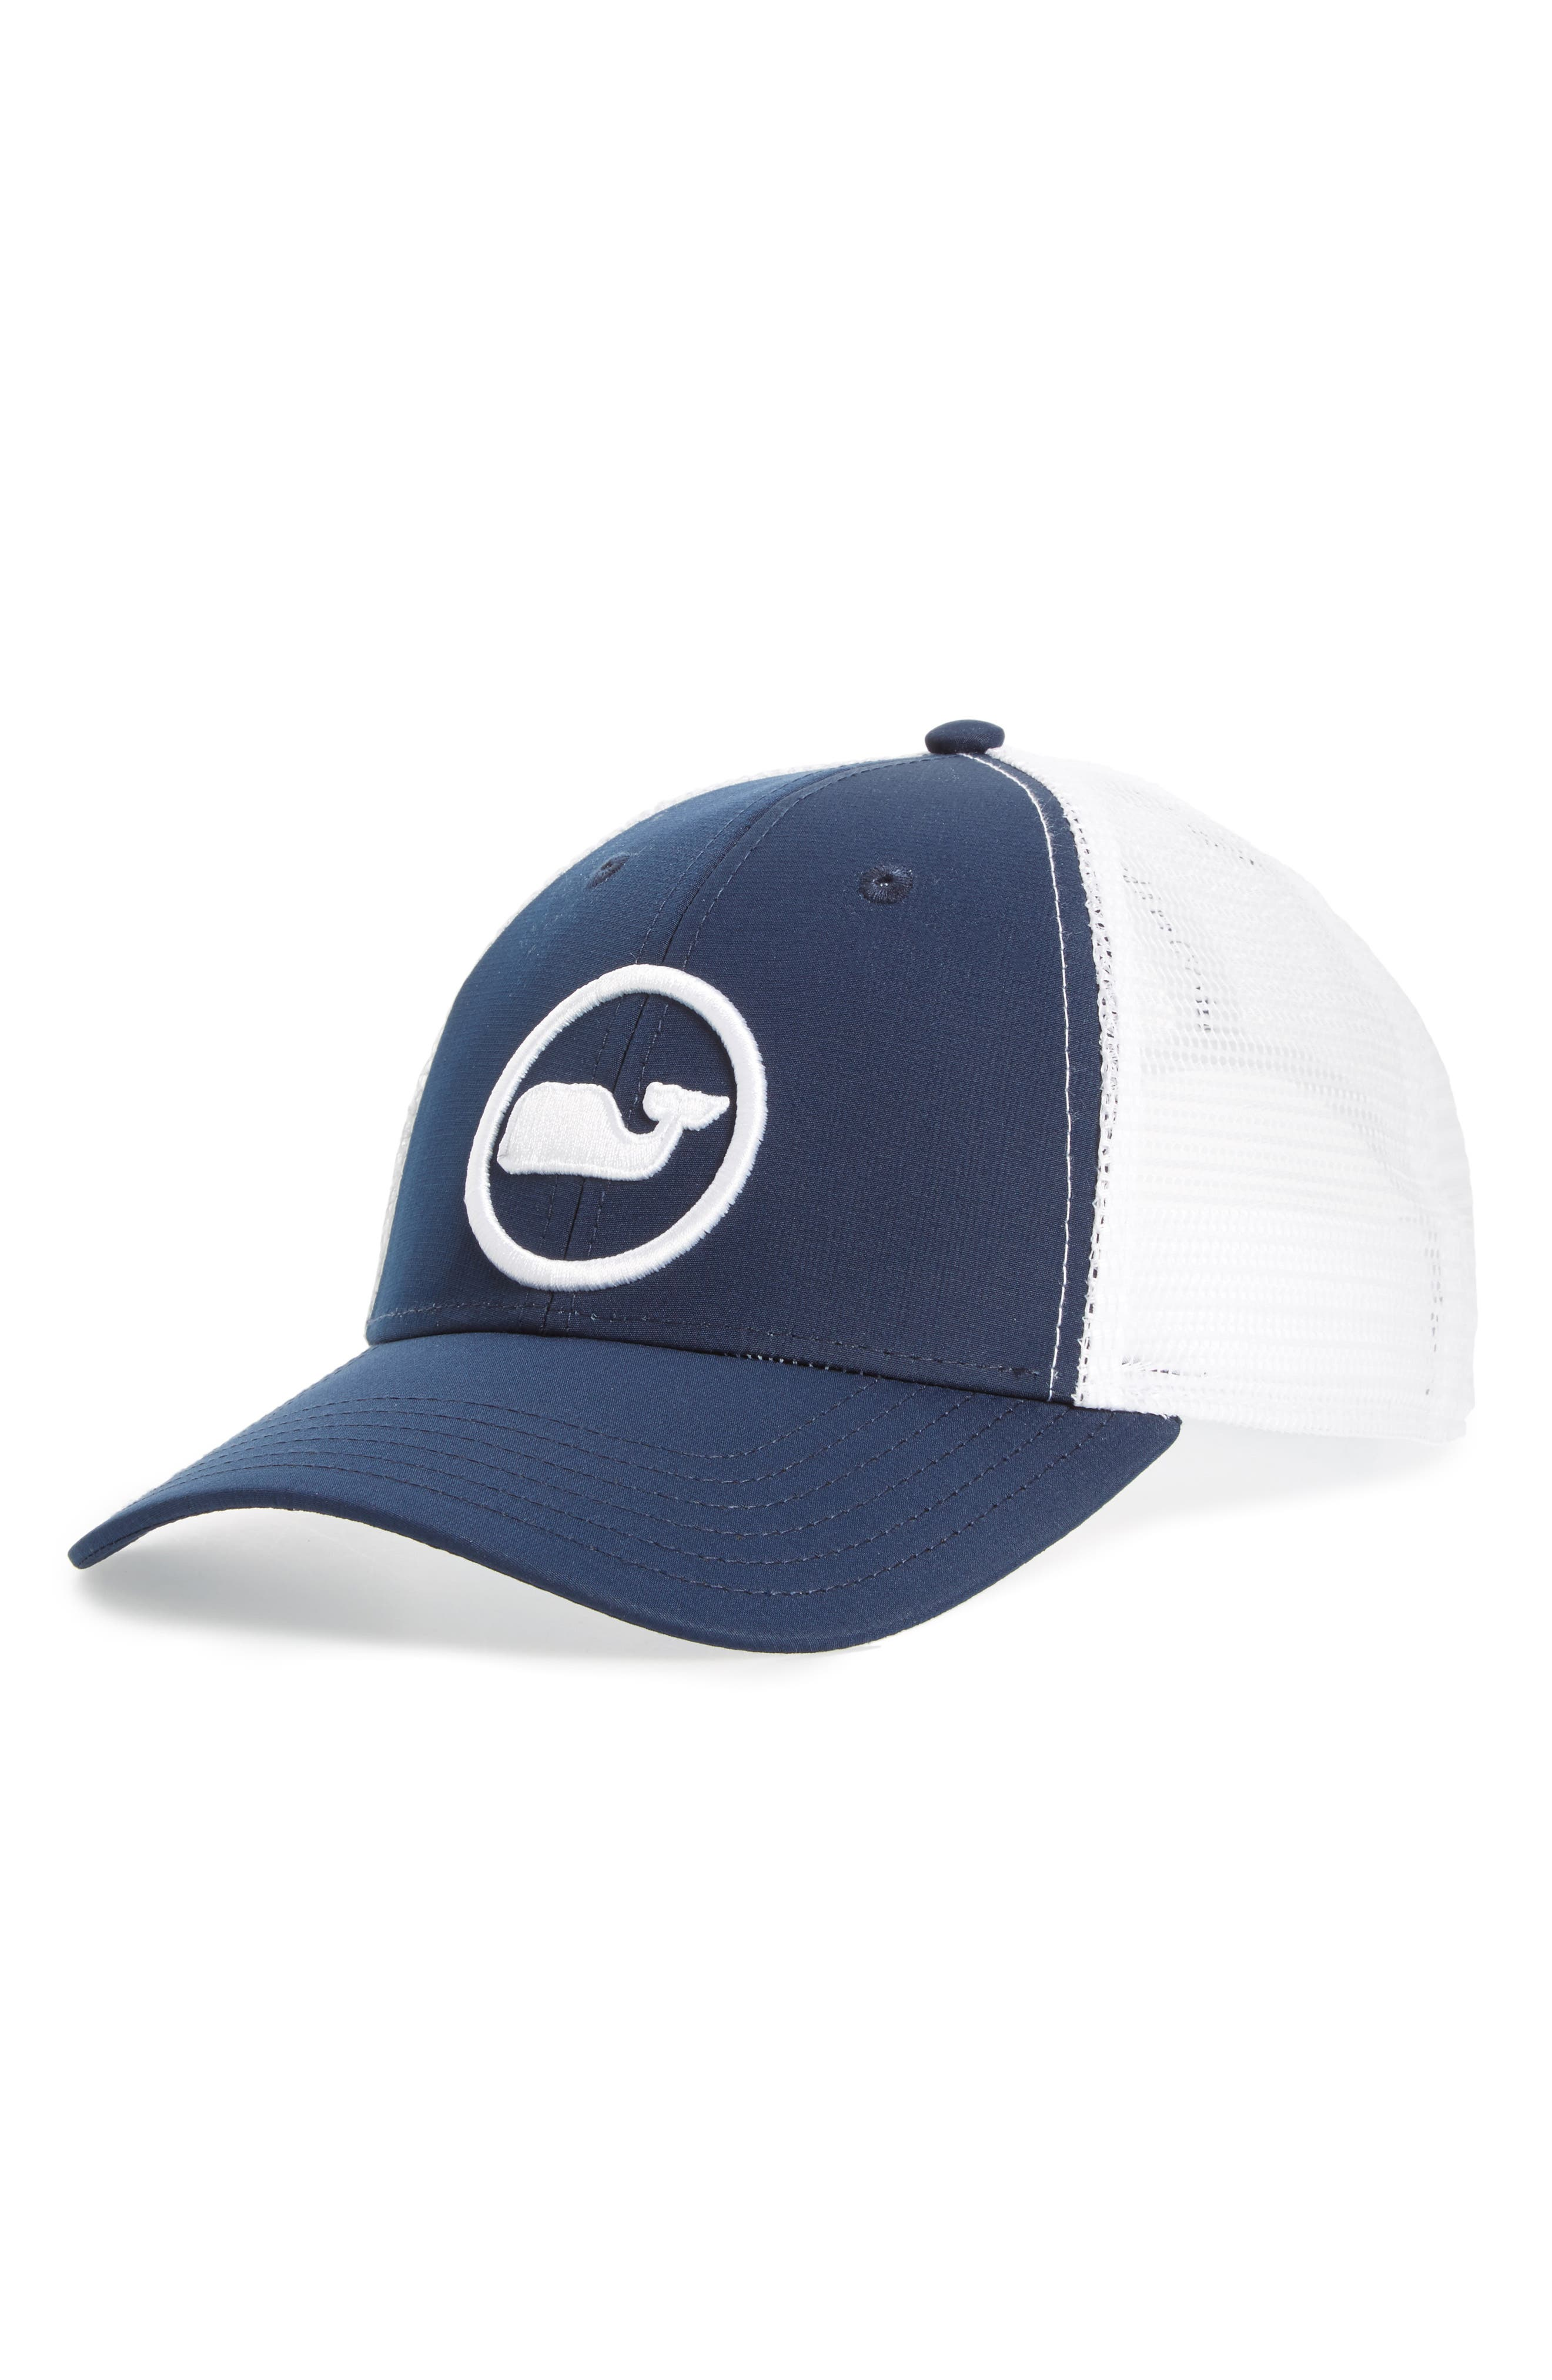 vineyard vines Whale Dot Trucker Cap